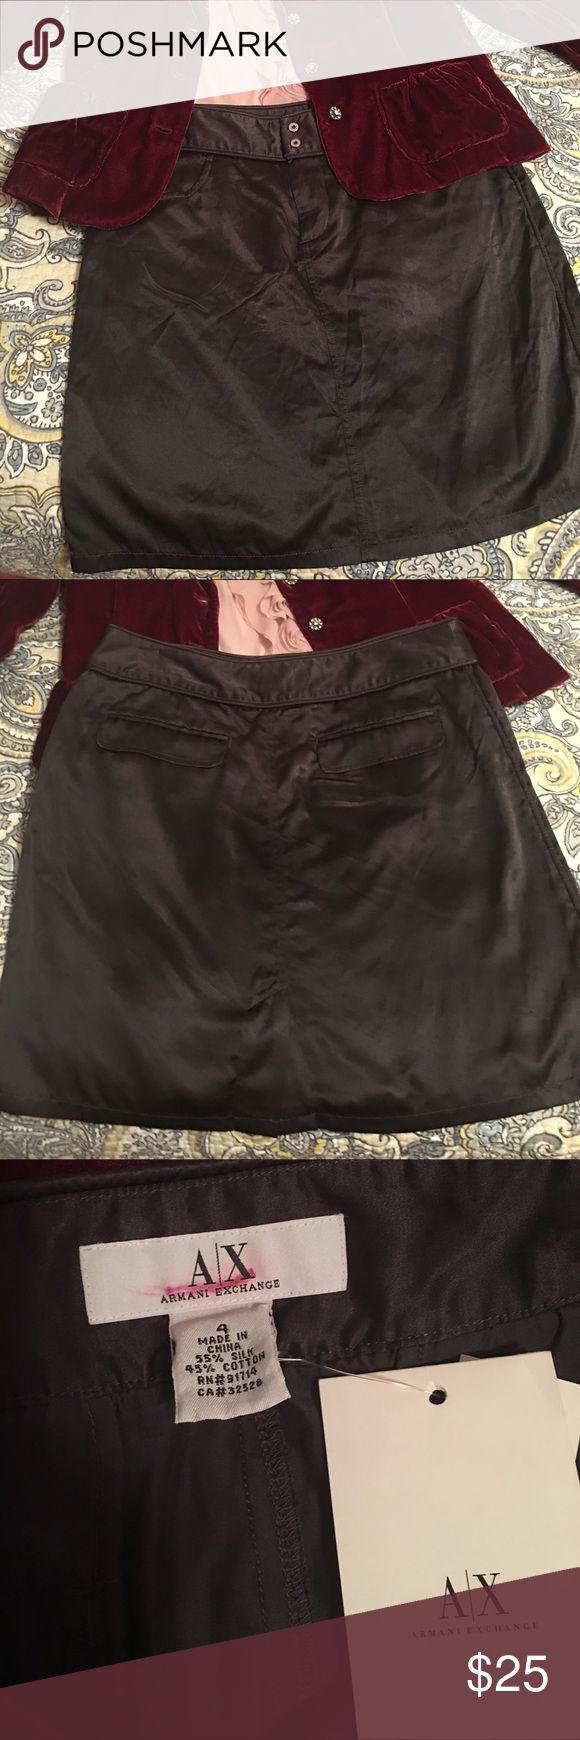 "Armani Exchange silk skirt Chocolate silky smooth skirt. Zip waist with two snaps, side and back pockets that lay flat. Back slit. Length is 18"" and waist is 14.5"" laying flat. Silk and cotton material. Hand wash or dry clean. A/X Armani Exchange Skirts Mini"